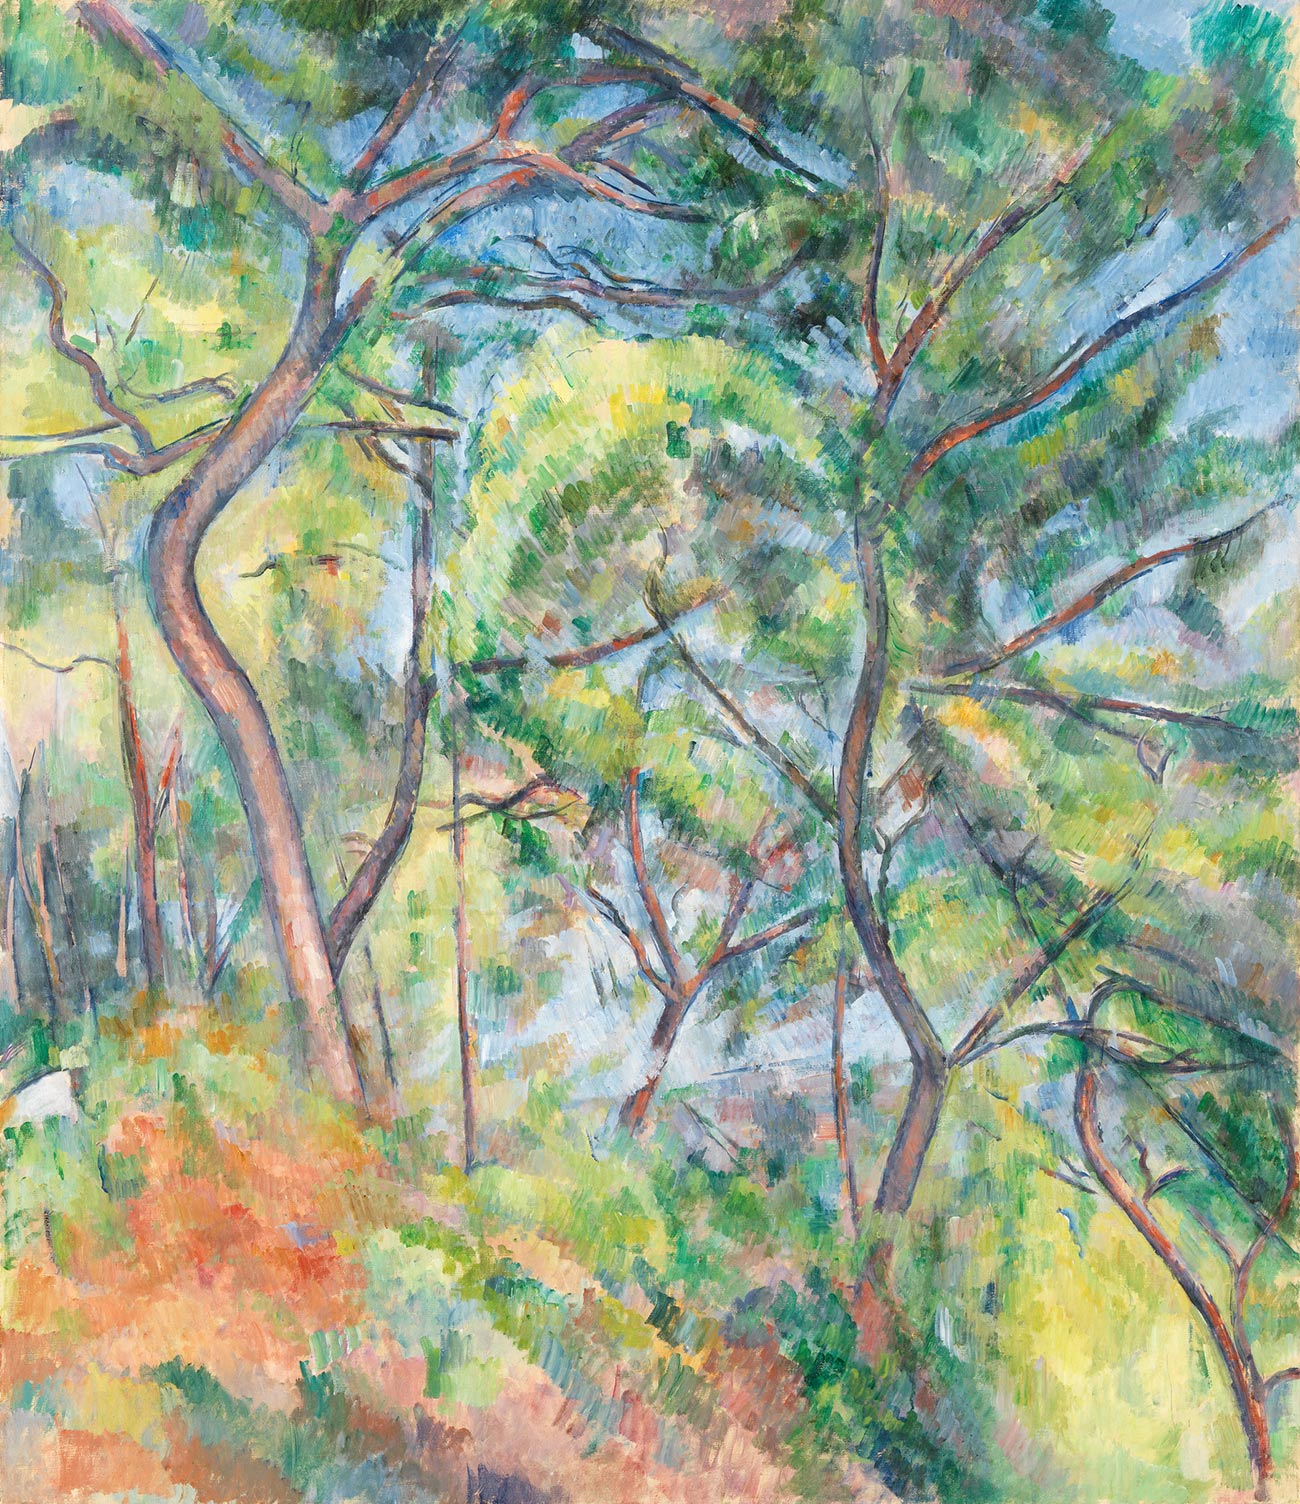 Abstract painting of tree trunks and green and red foliage fills the image.